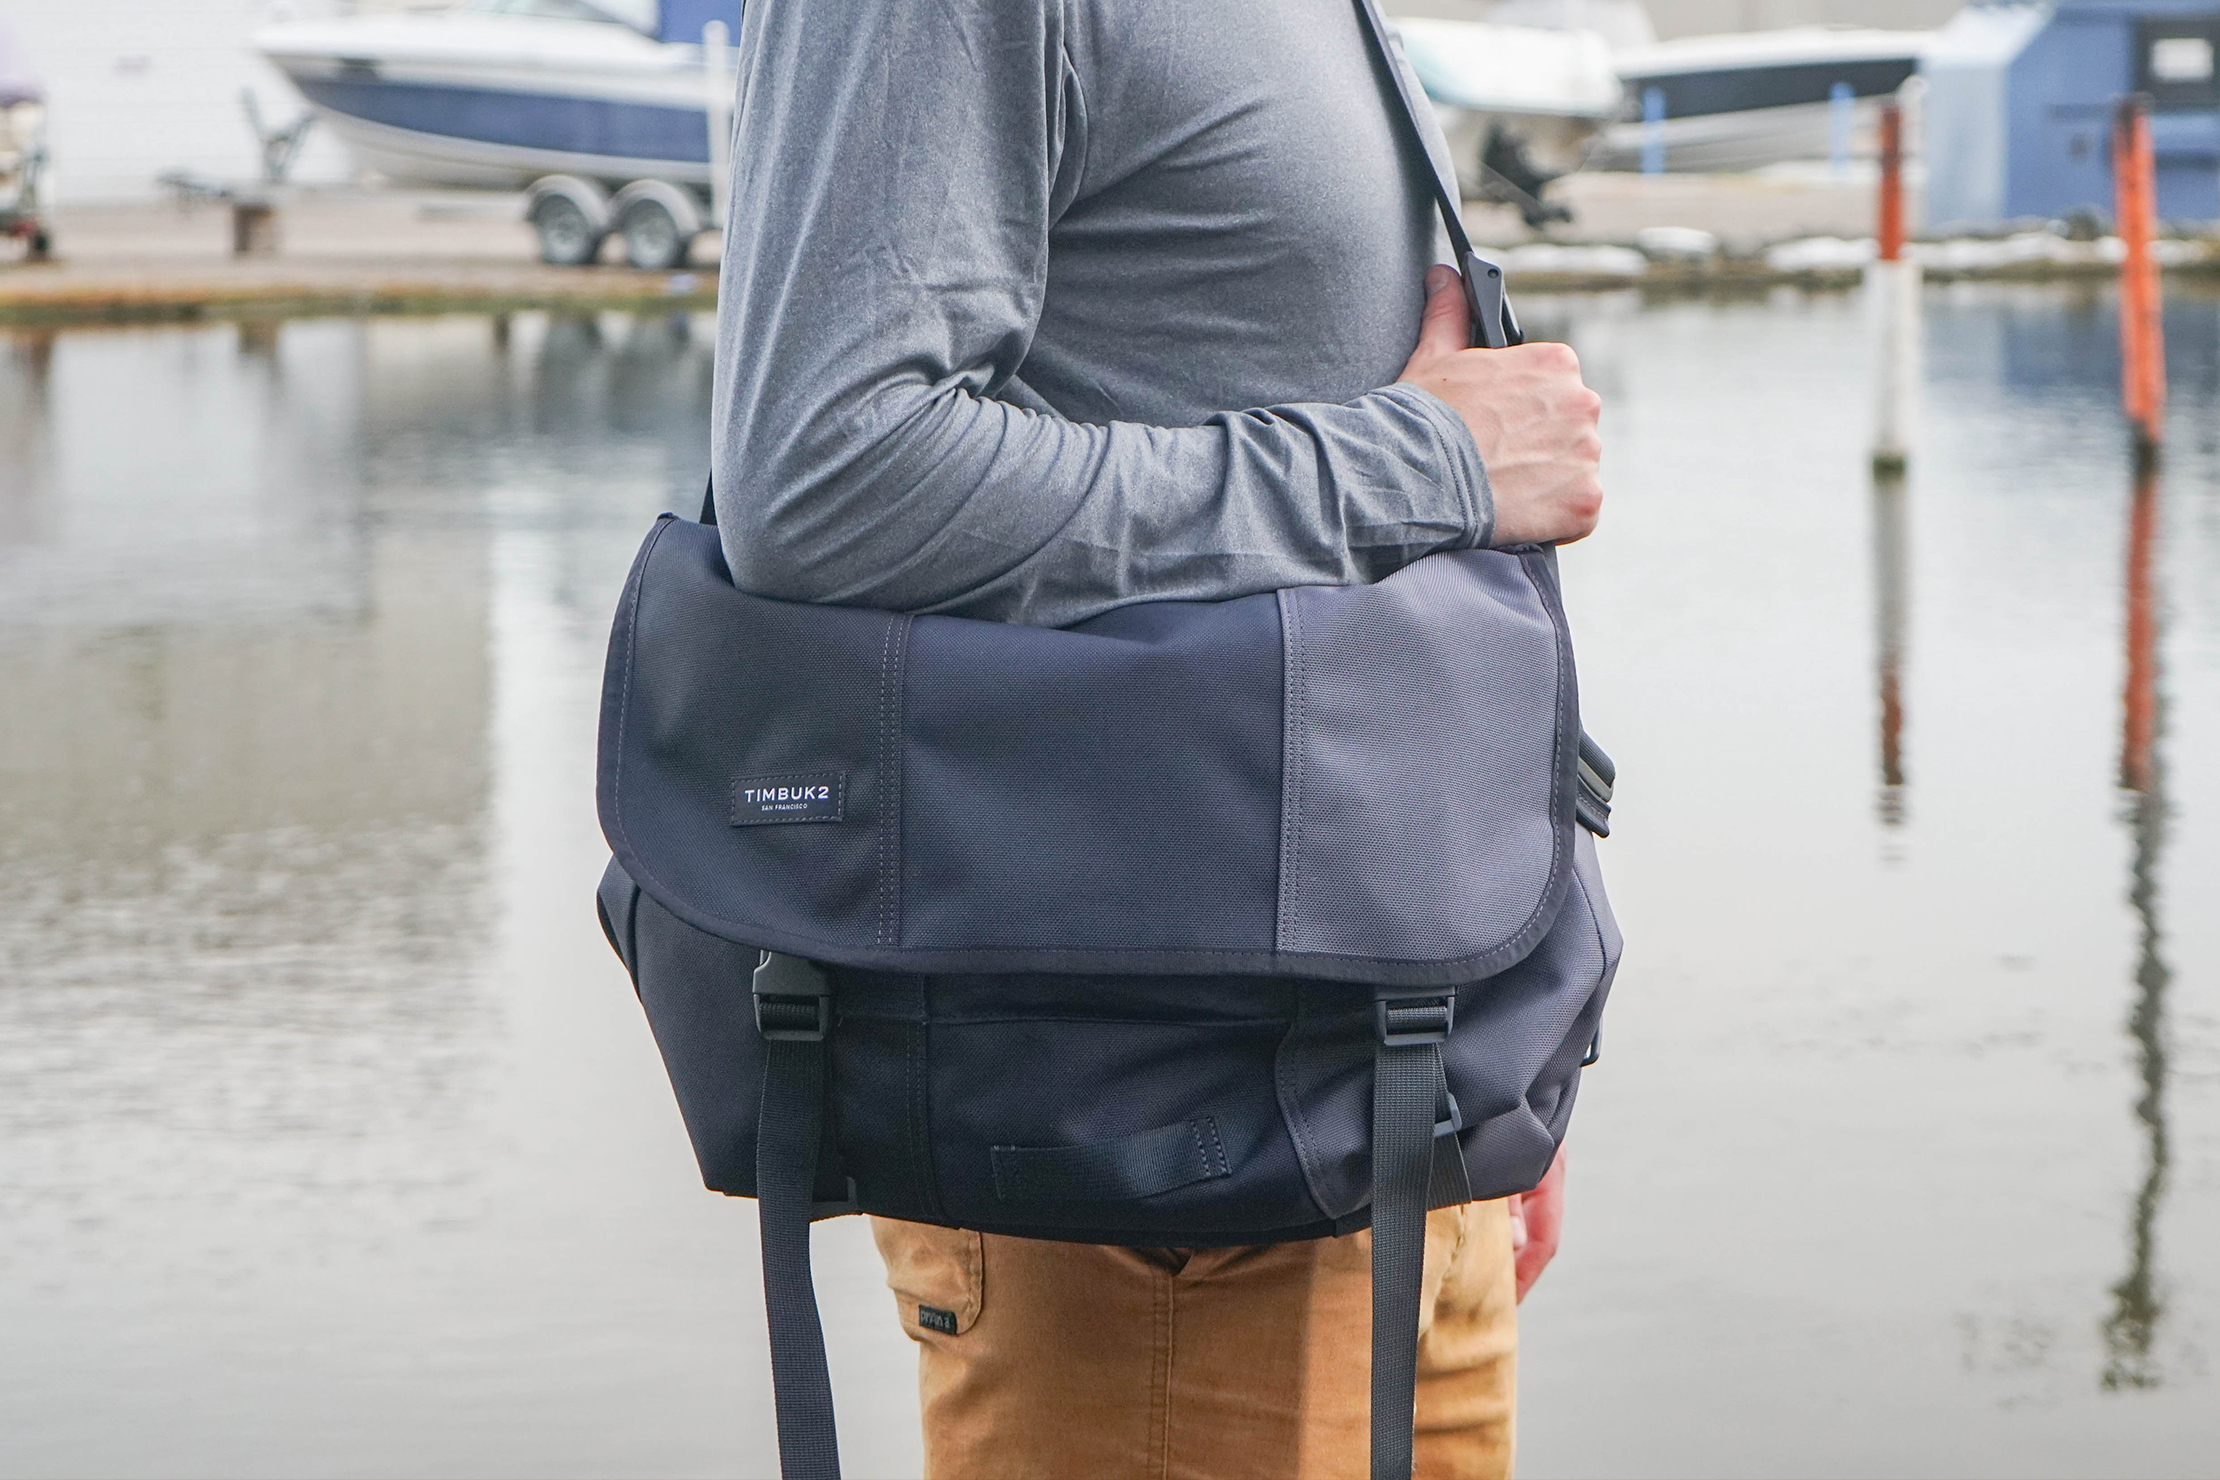 Timbuk2 Classic Messenger Bag in Detroit